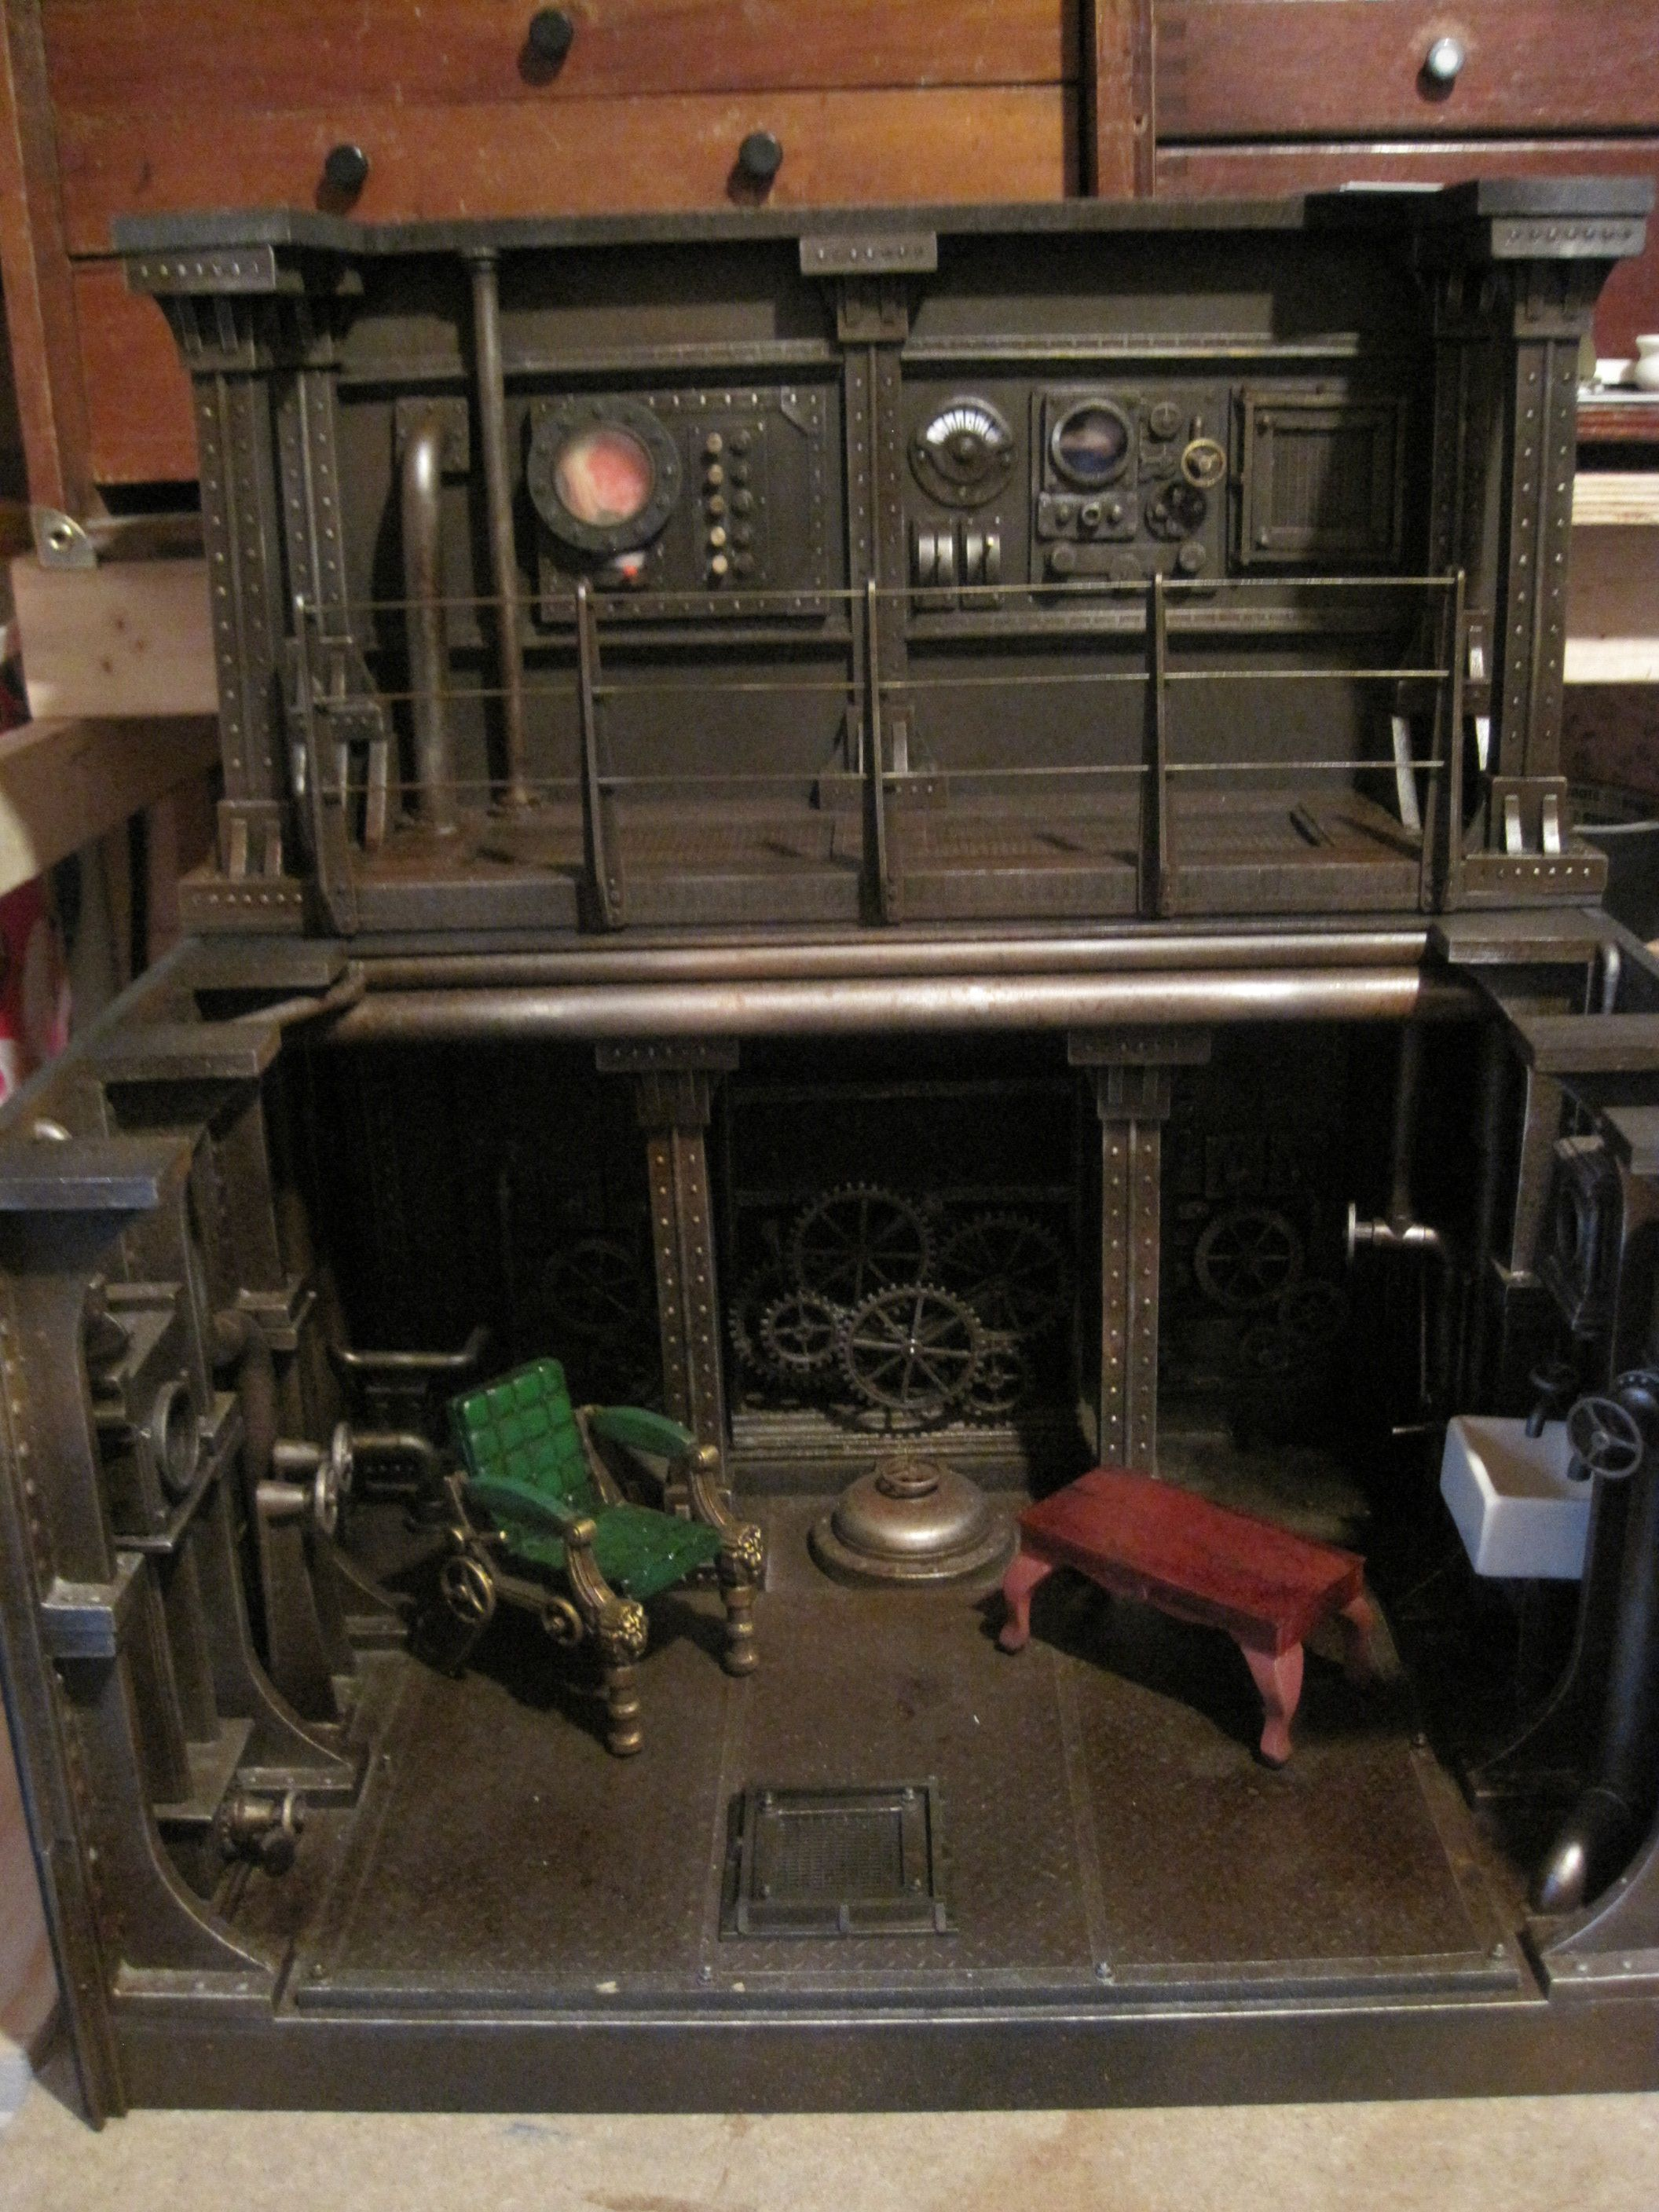 12Th Scale Steampunk Roombox By Mike Kelm